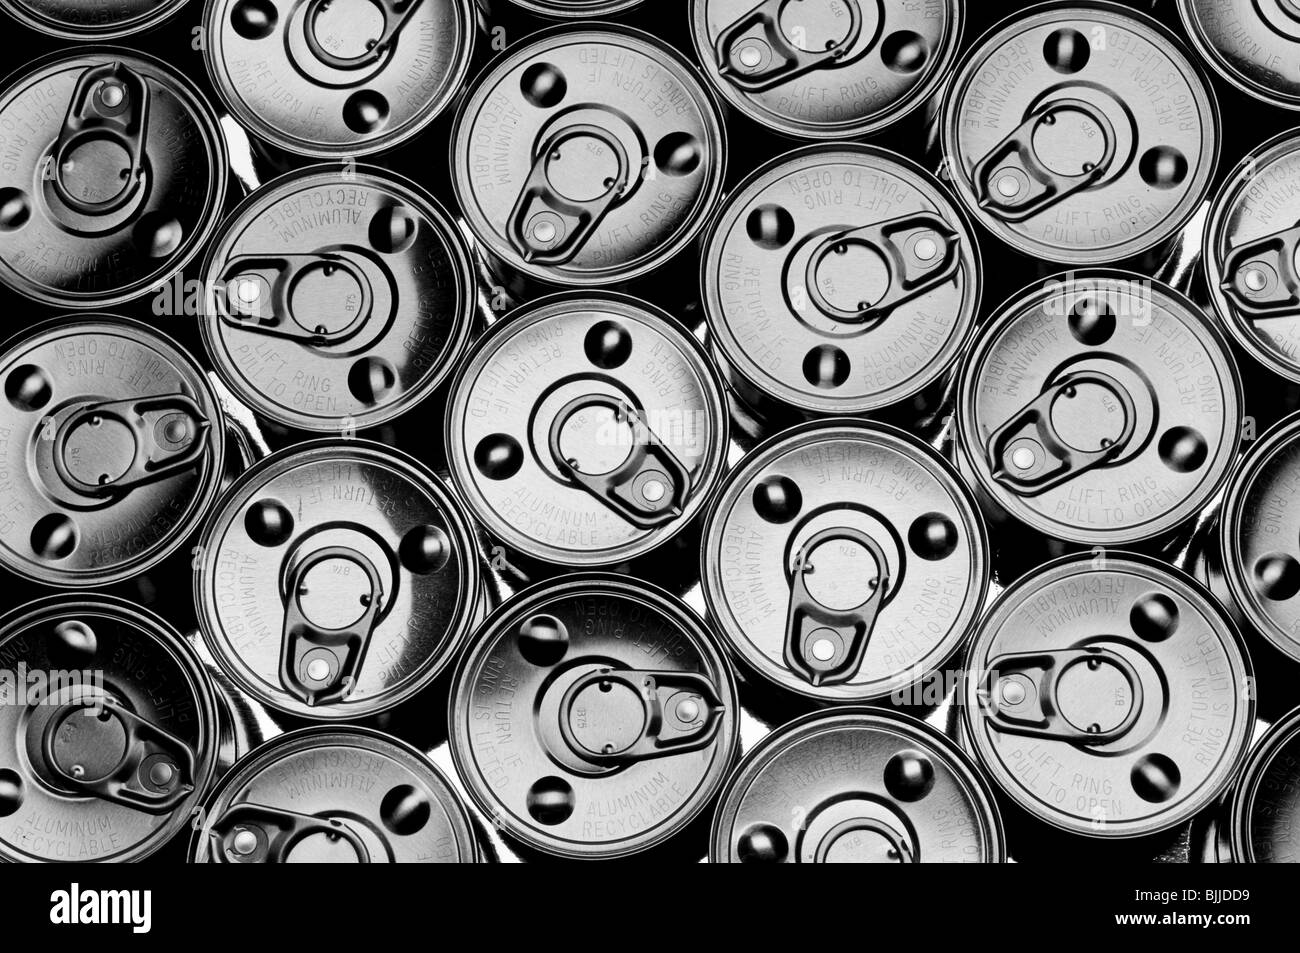 abstract top view of a number of tin cans - Stock Image